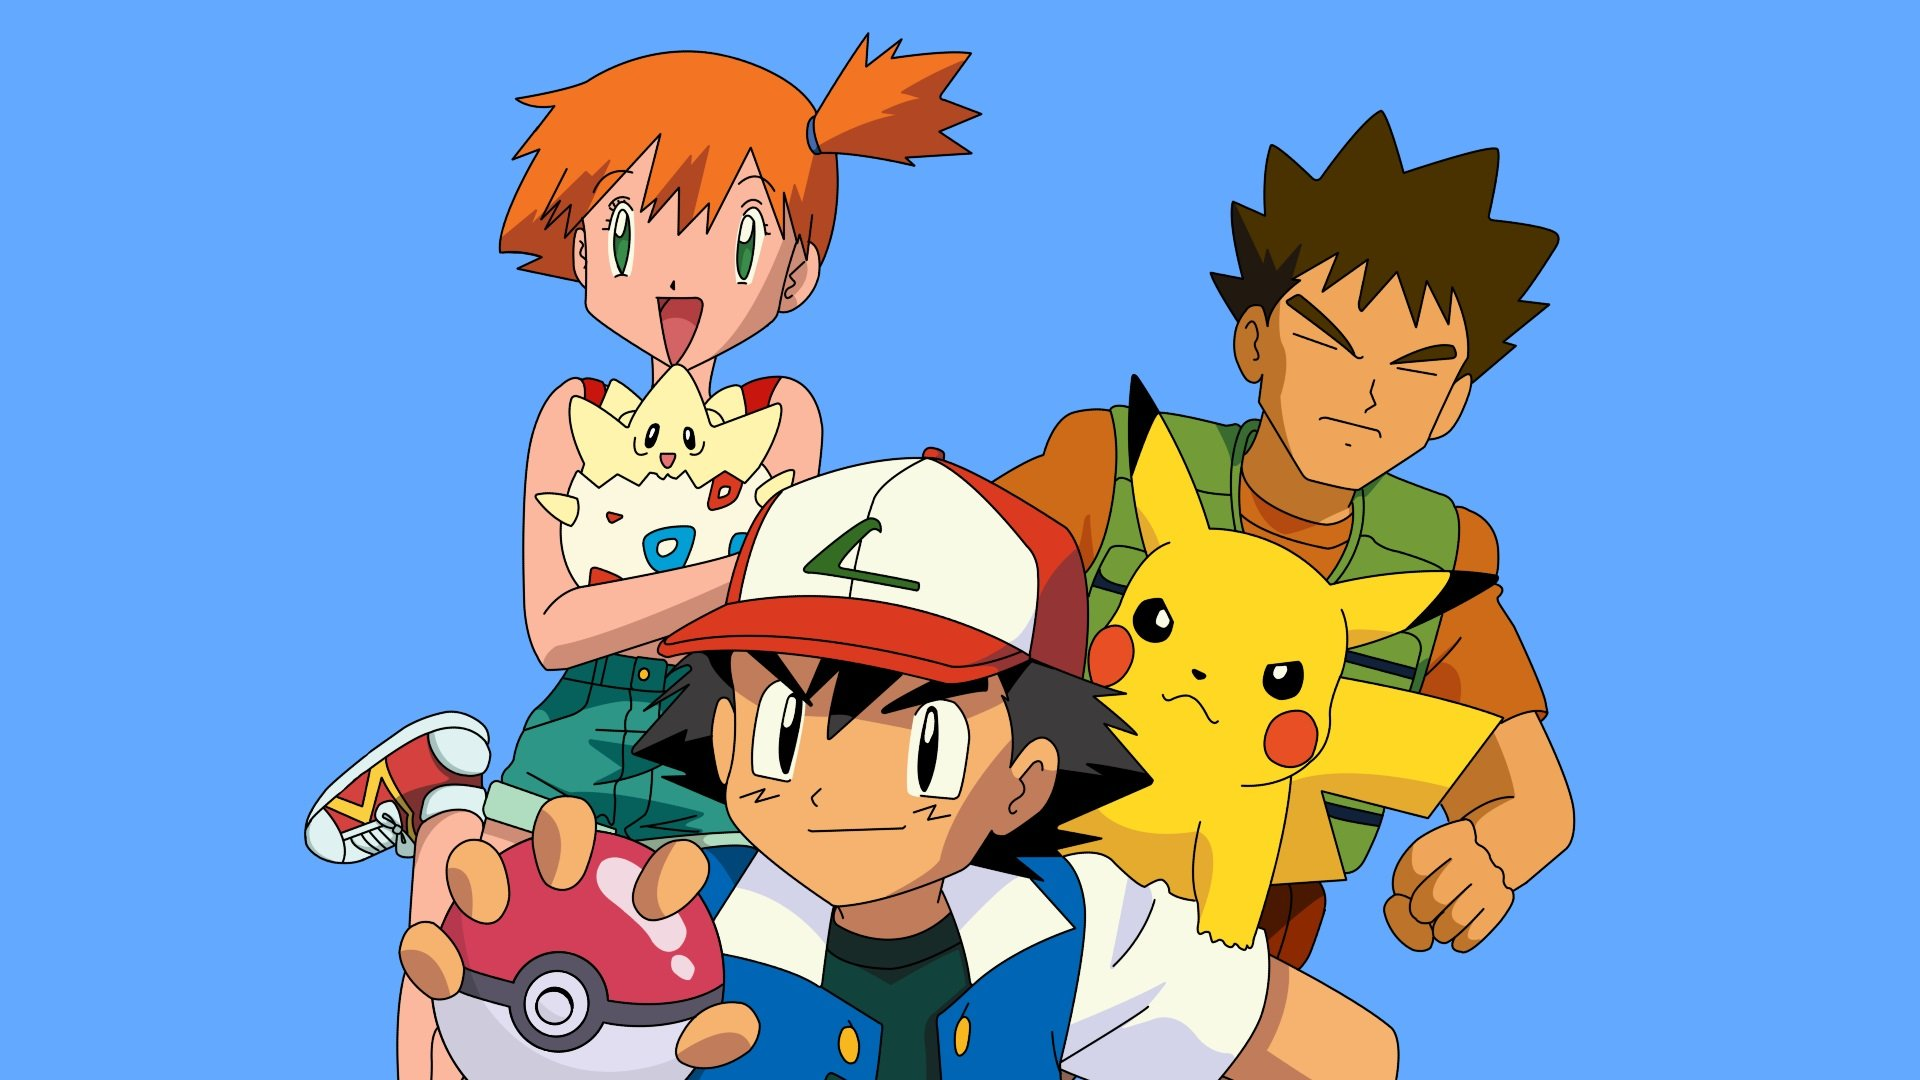 Brock and Misty